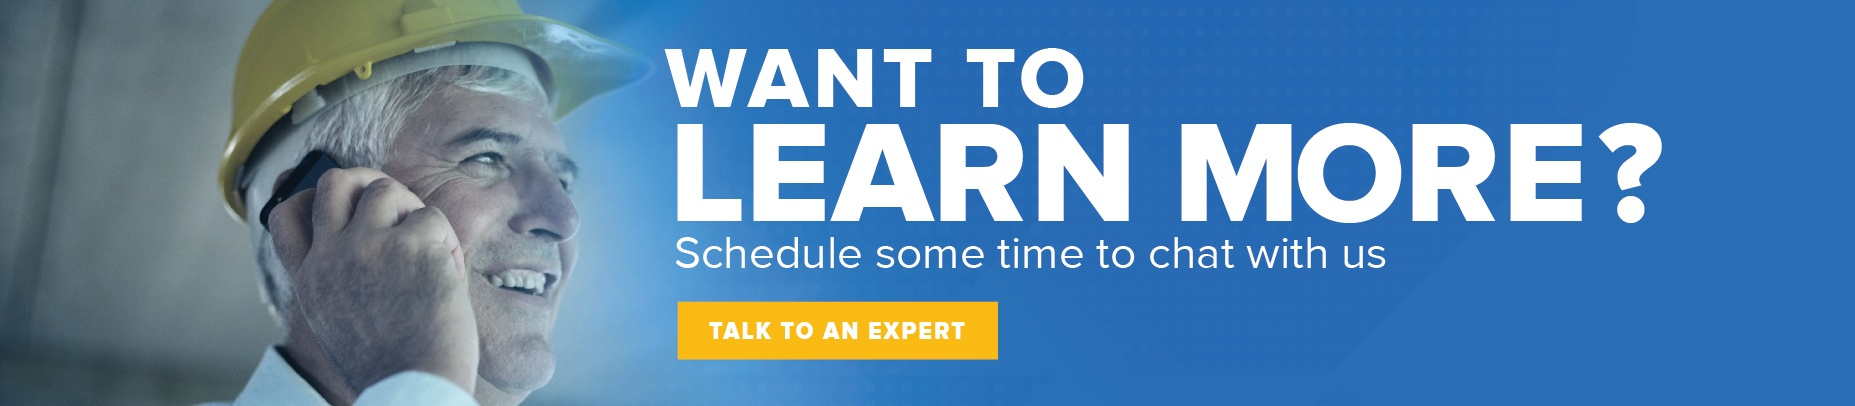 Chat With An Expert. Our reliability experts are ready to answer your questions